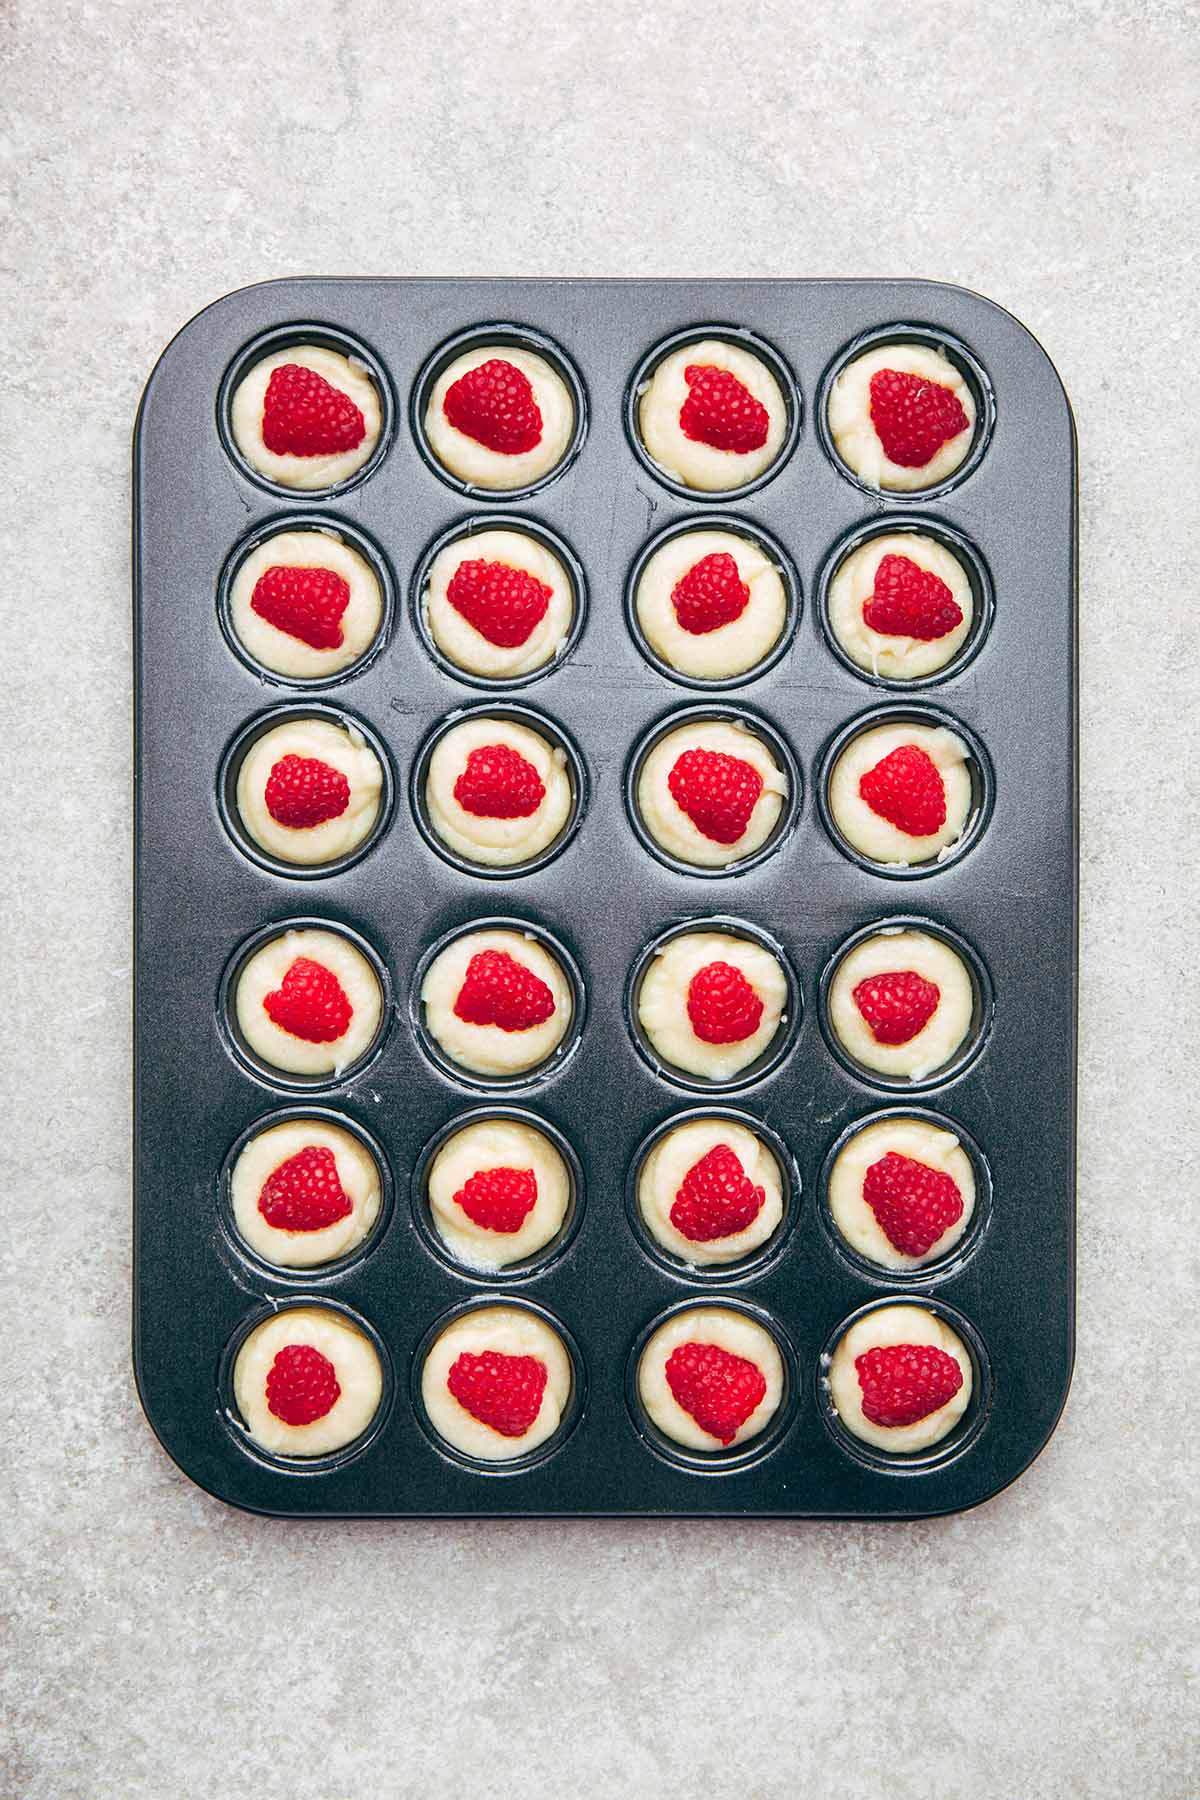 Financier batter in a mini muffin tin with raspberries pressed into the cakes.